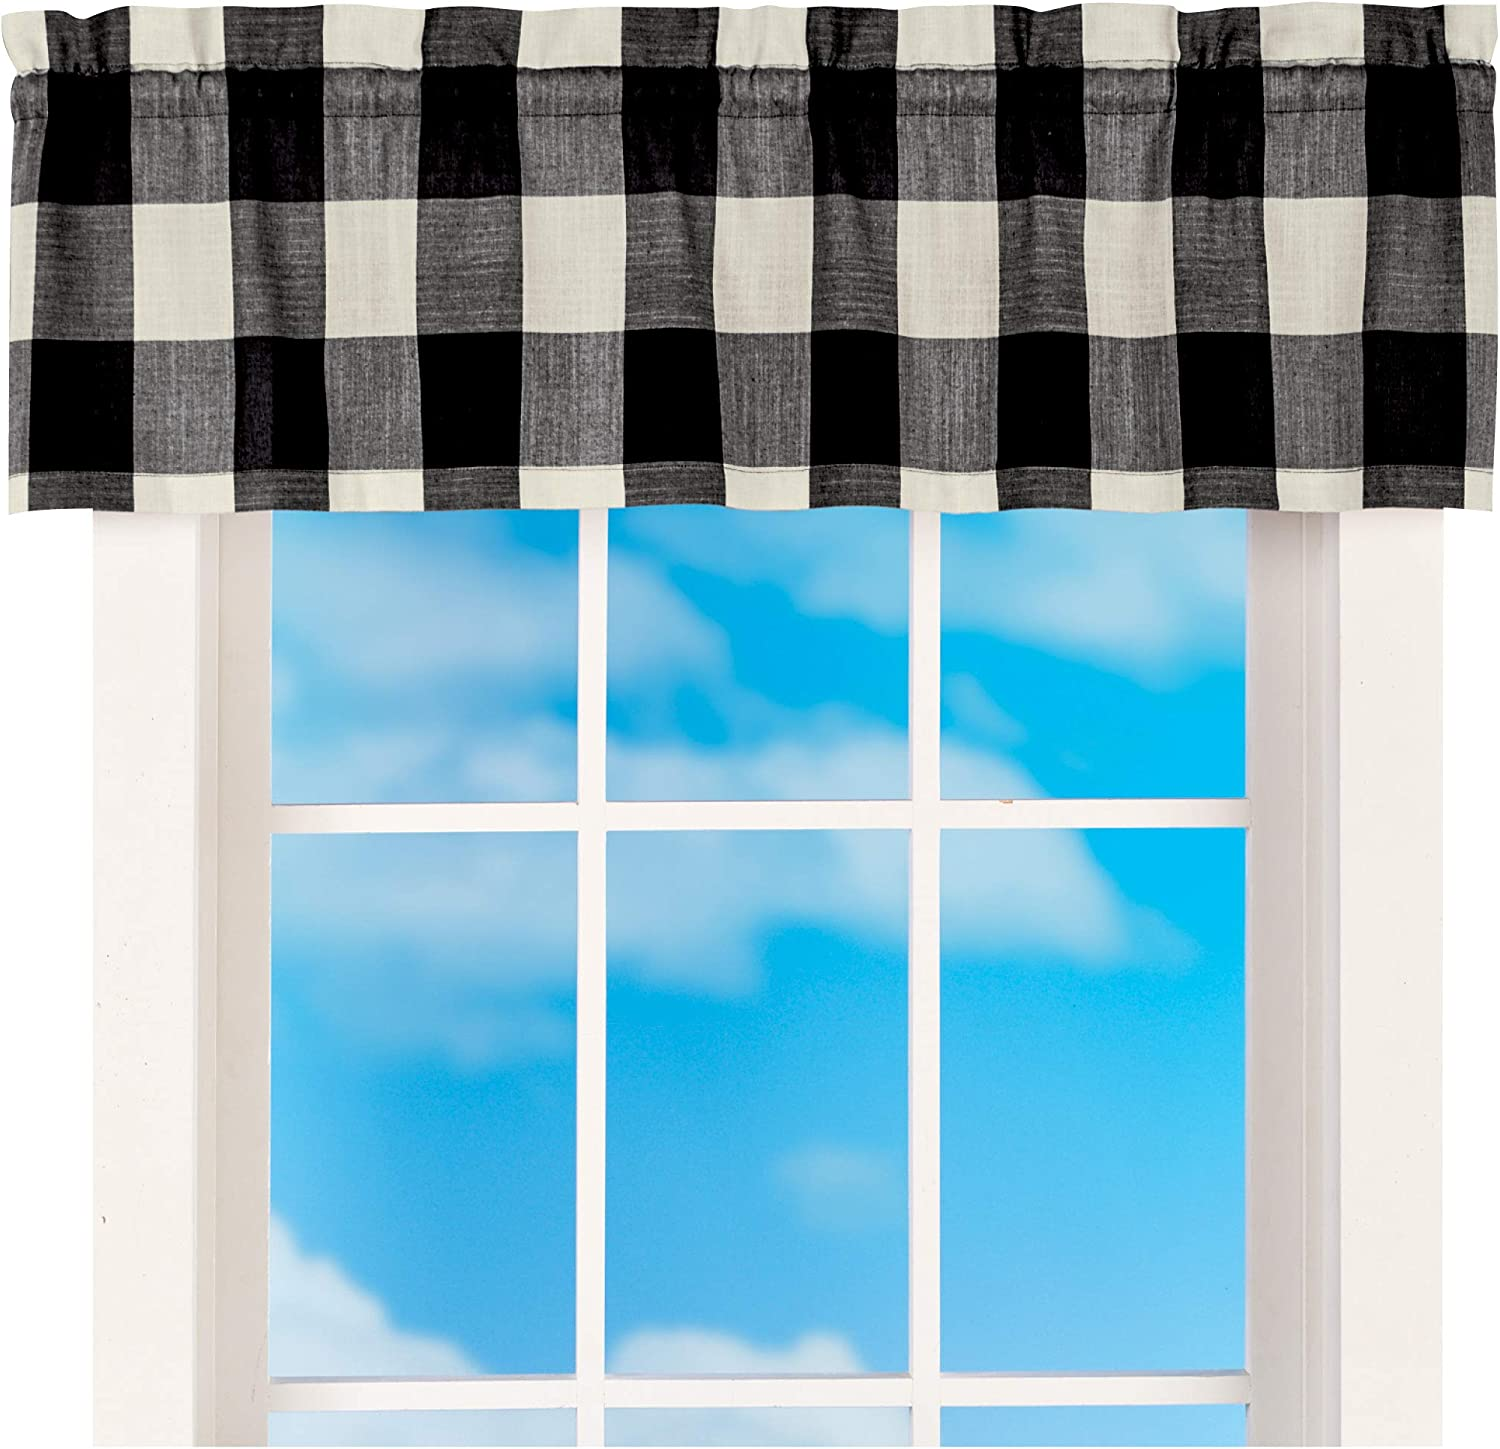 52 wide RED  BLACK or GRAY  Buffalo Plaid Valance or Panel Cotton Print 52 X  14 18 24/' 32 Lined or Unlined